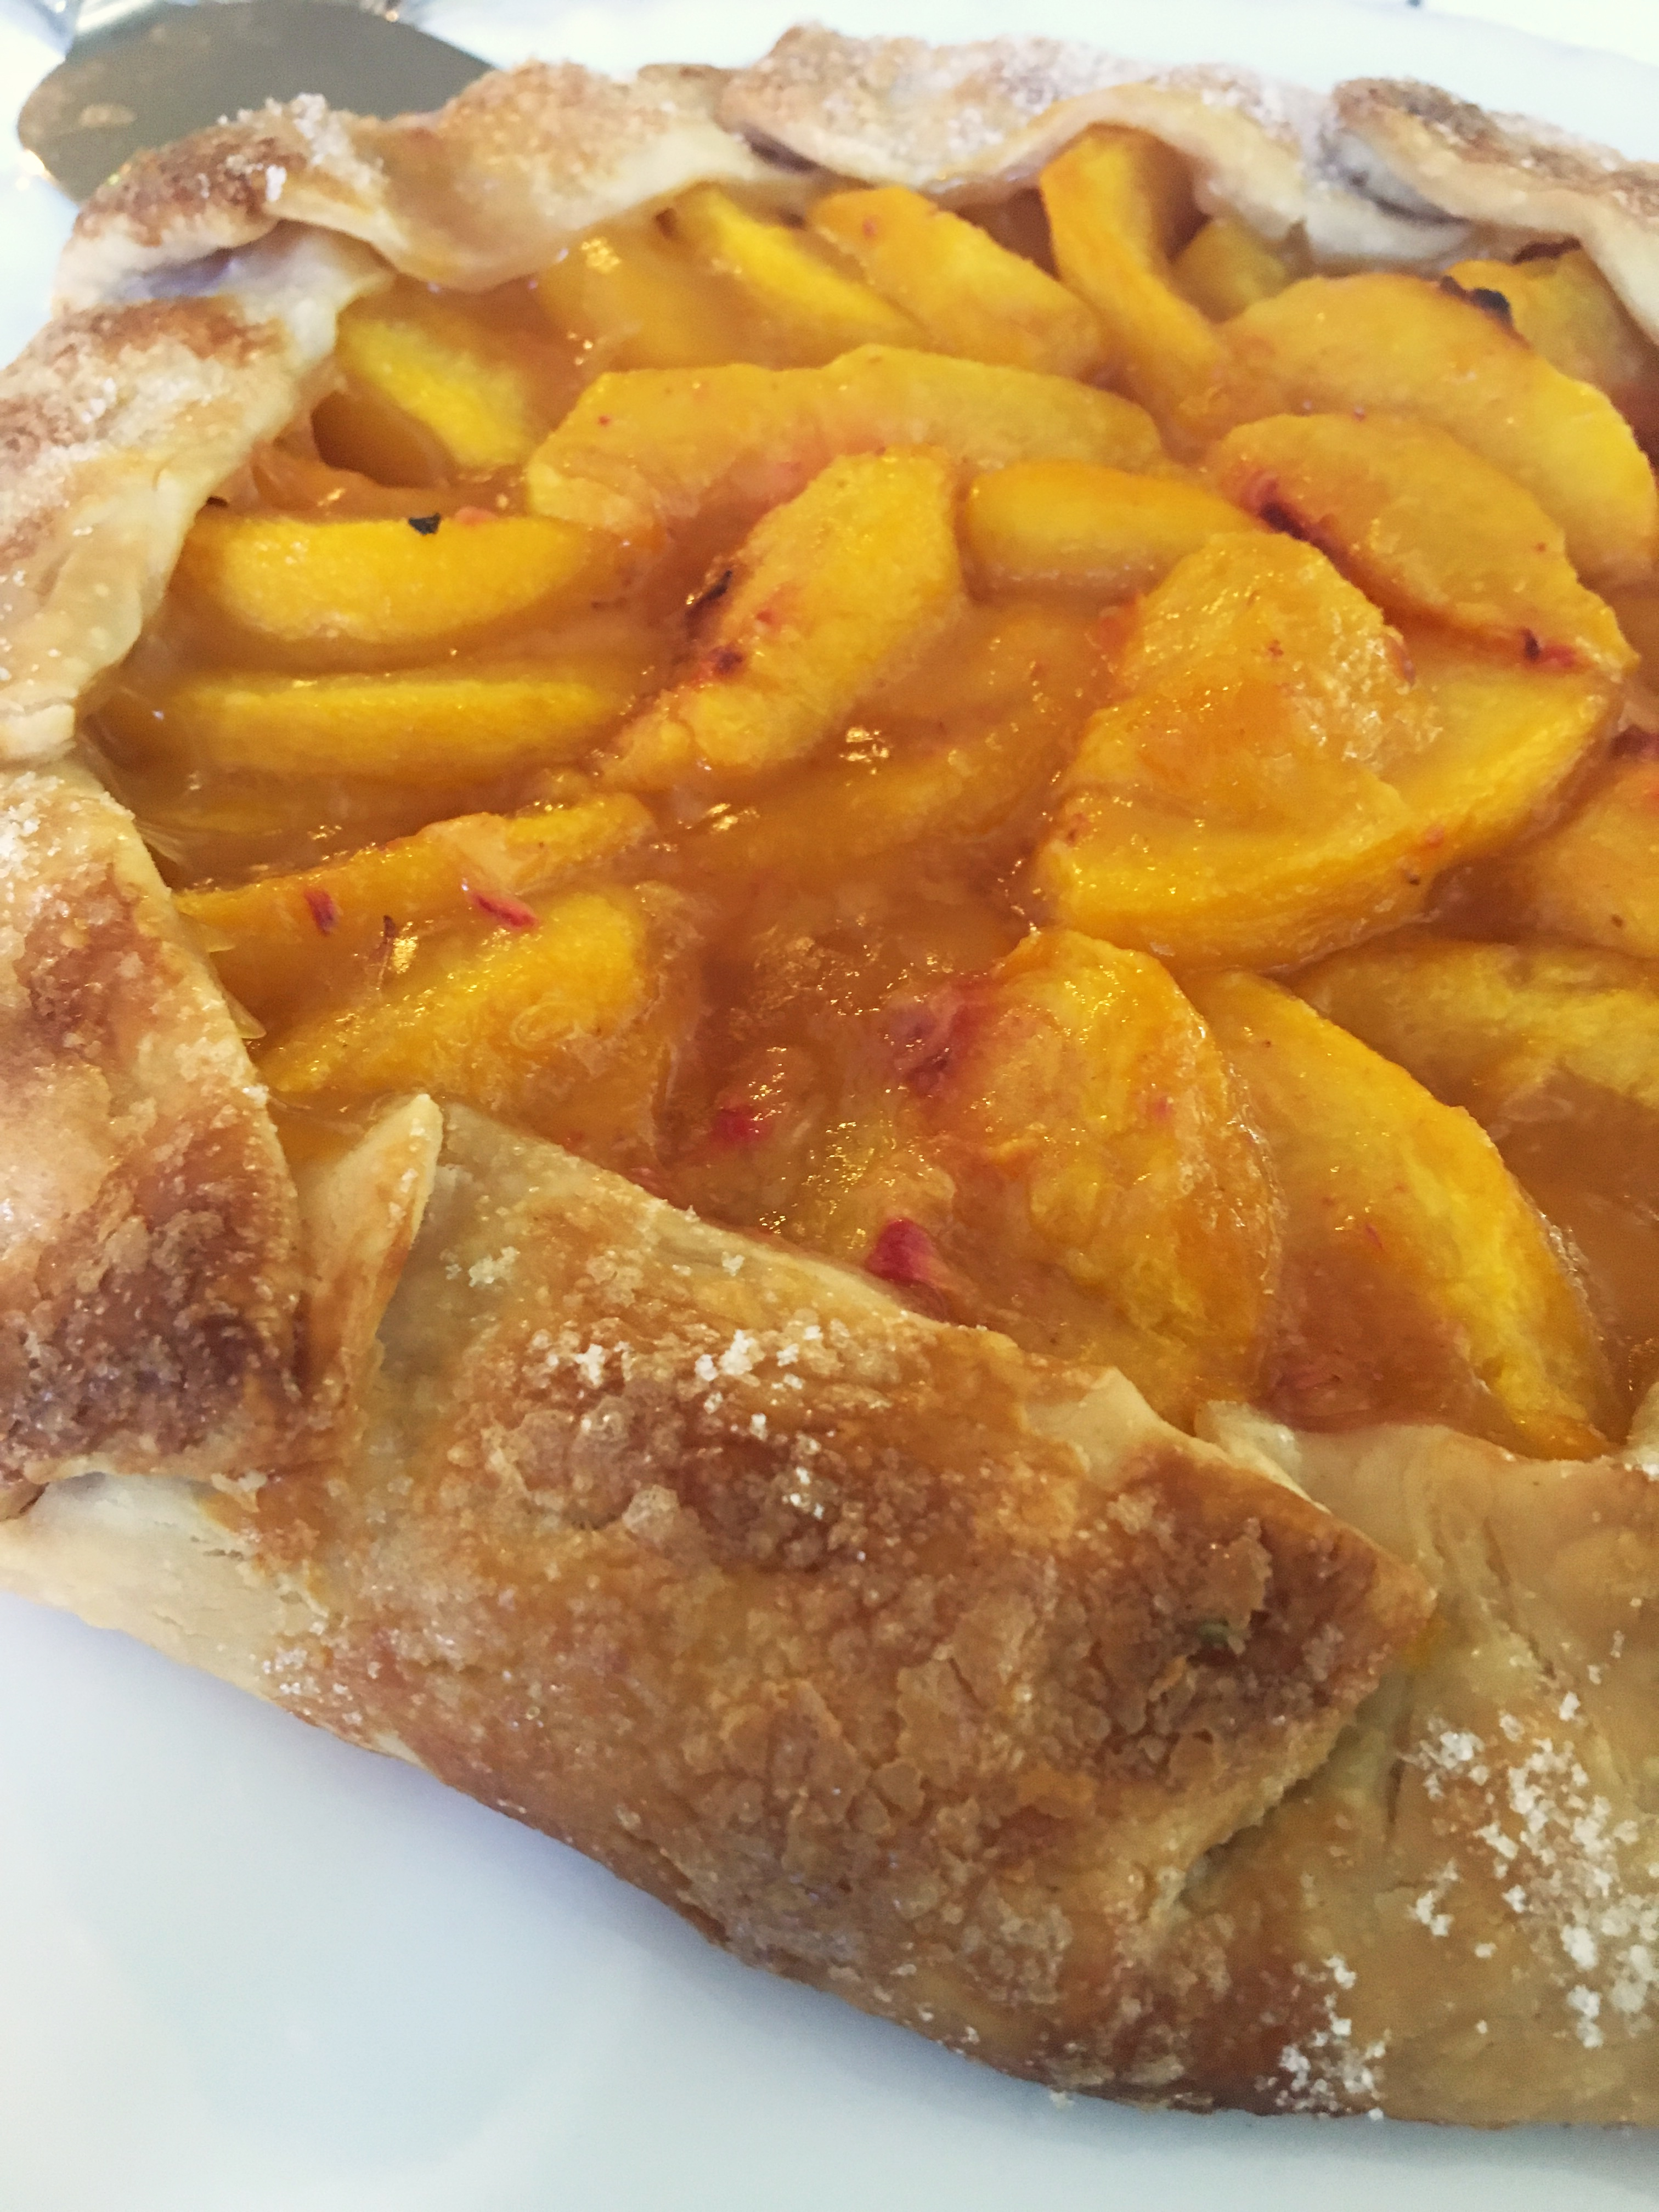 baked fresh peach galette fresh from the oven